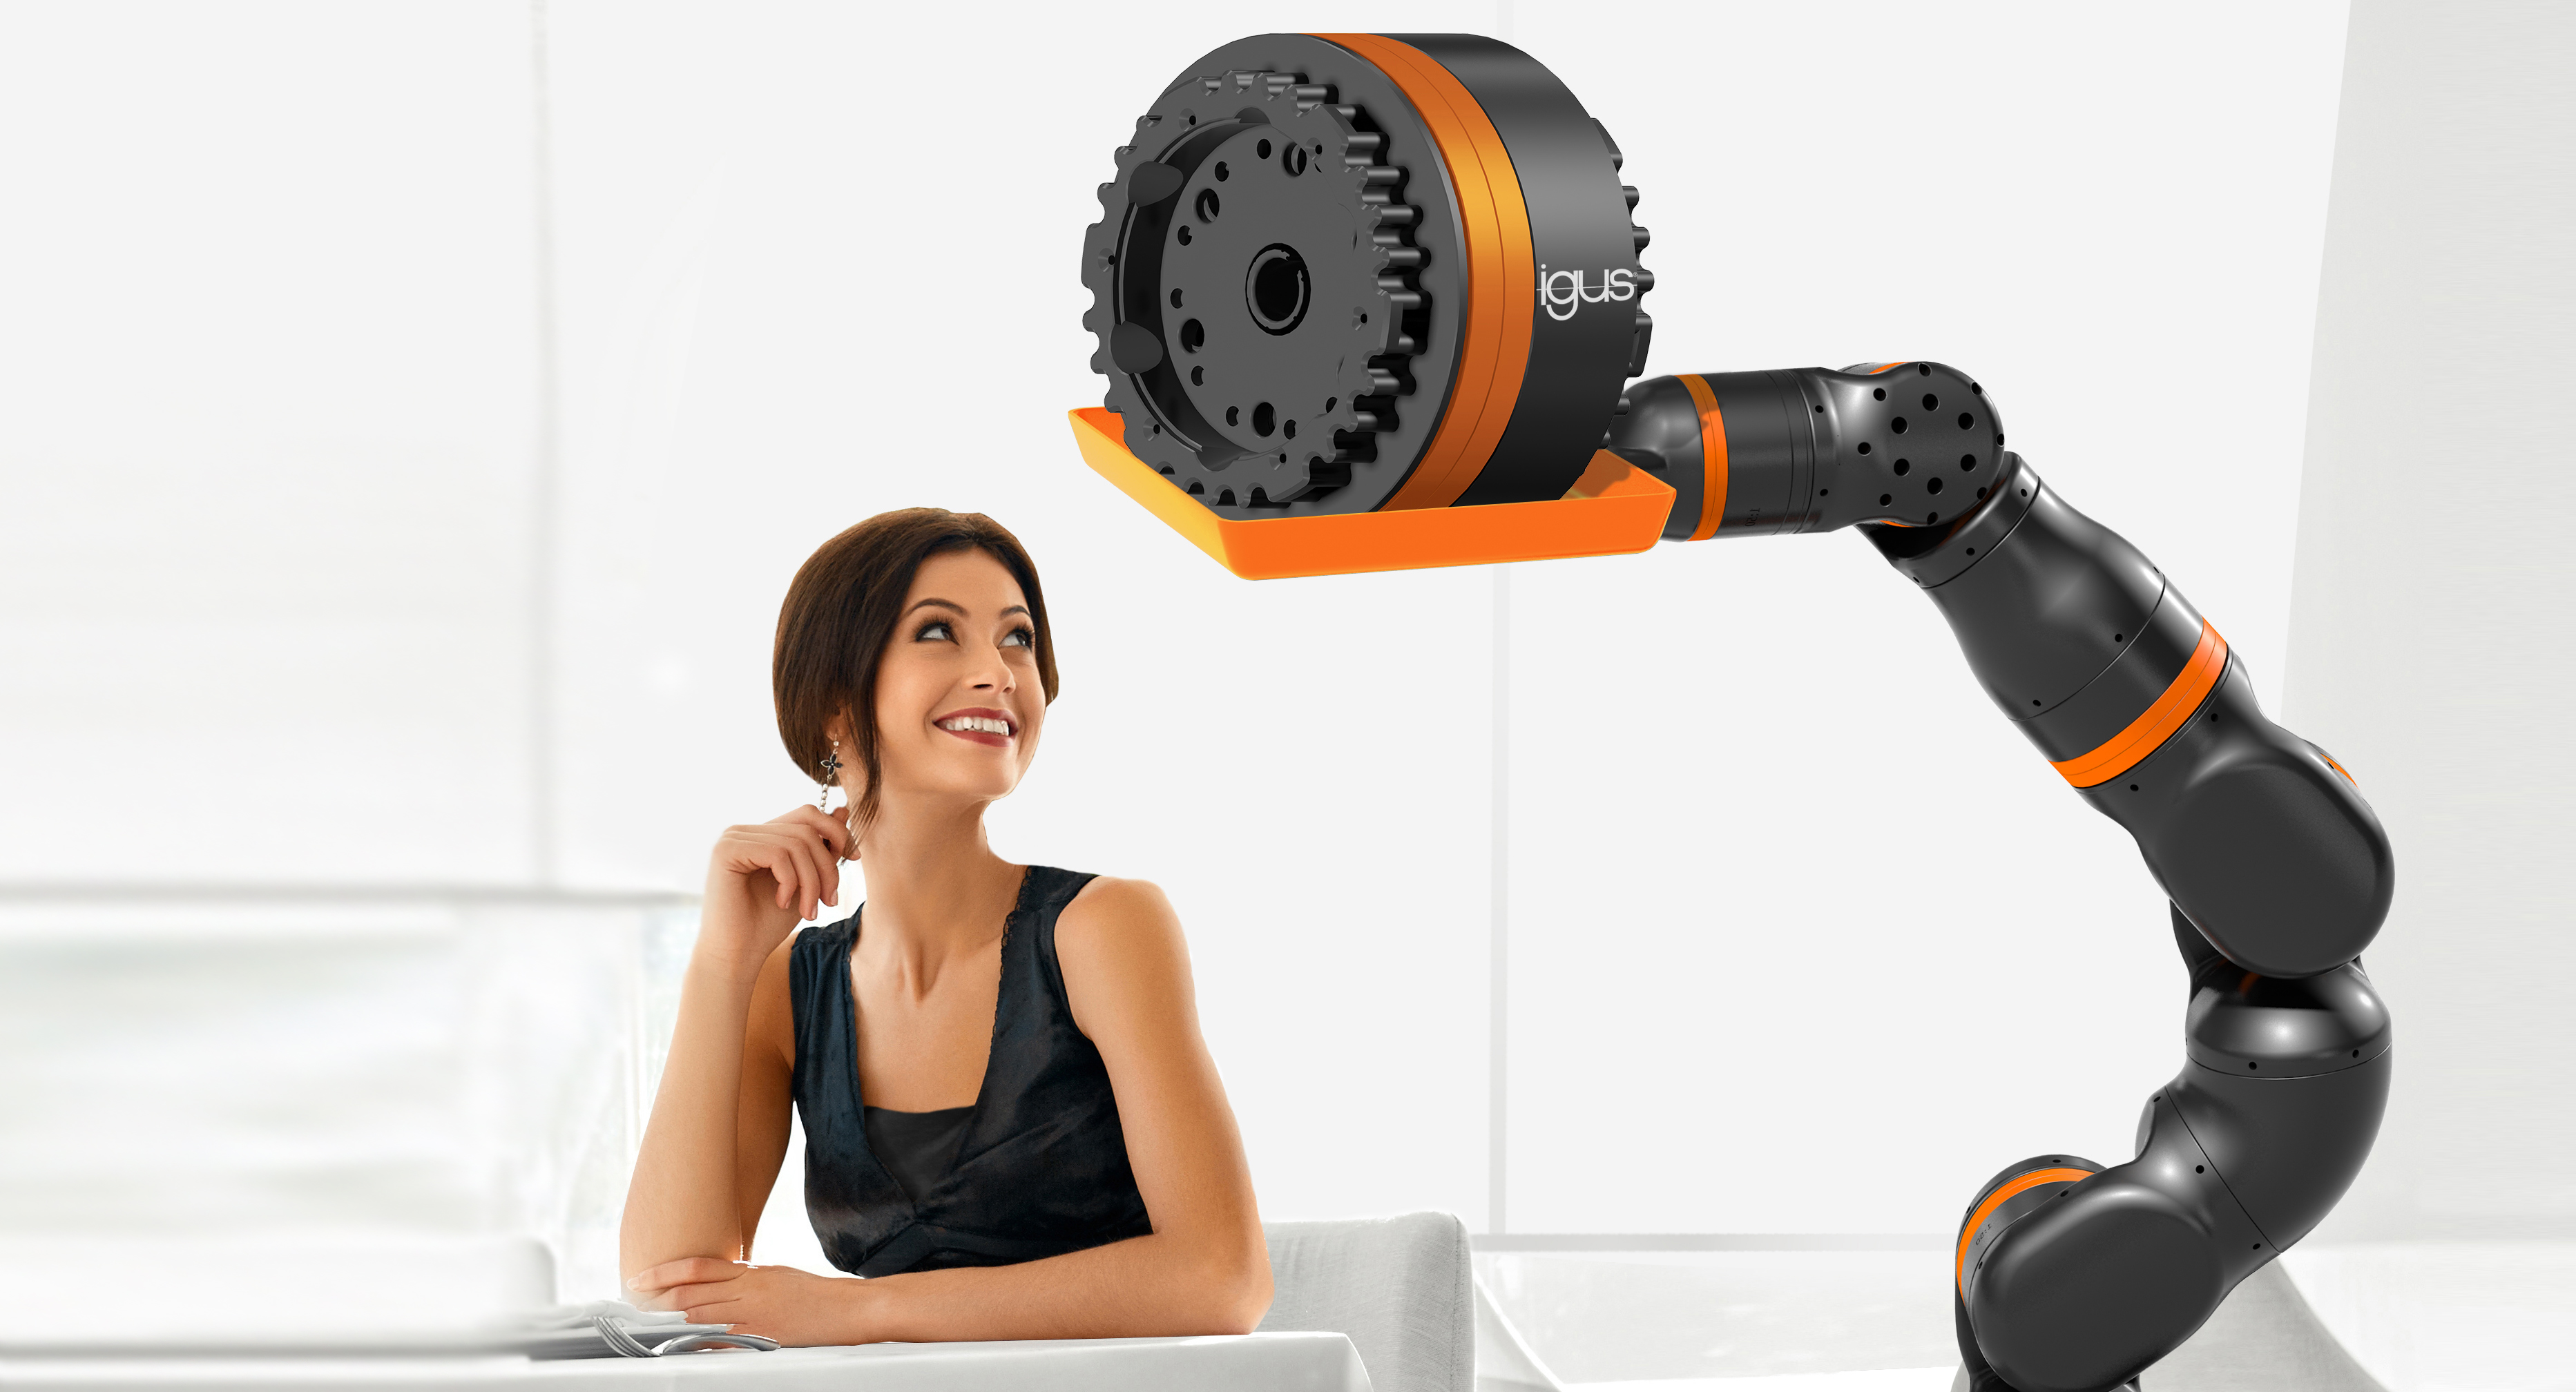 igus will unveil low-cost 6-axis robotic joint at Hannover Messe